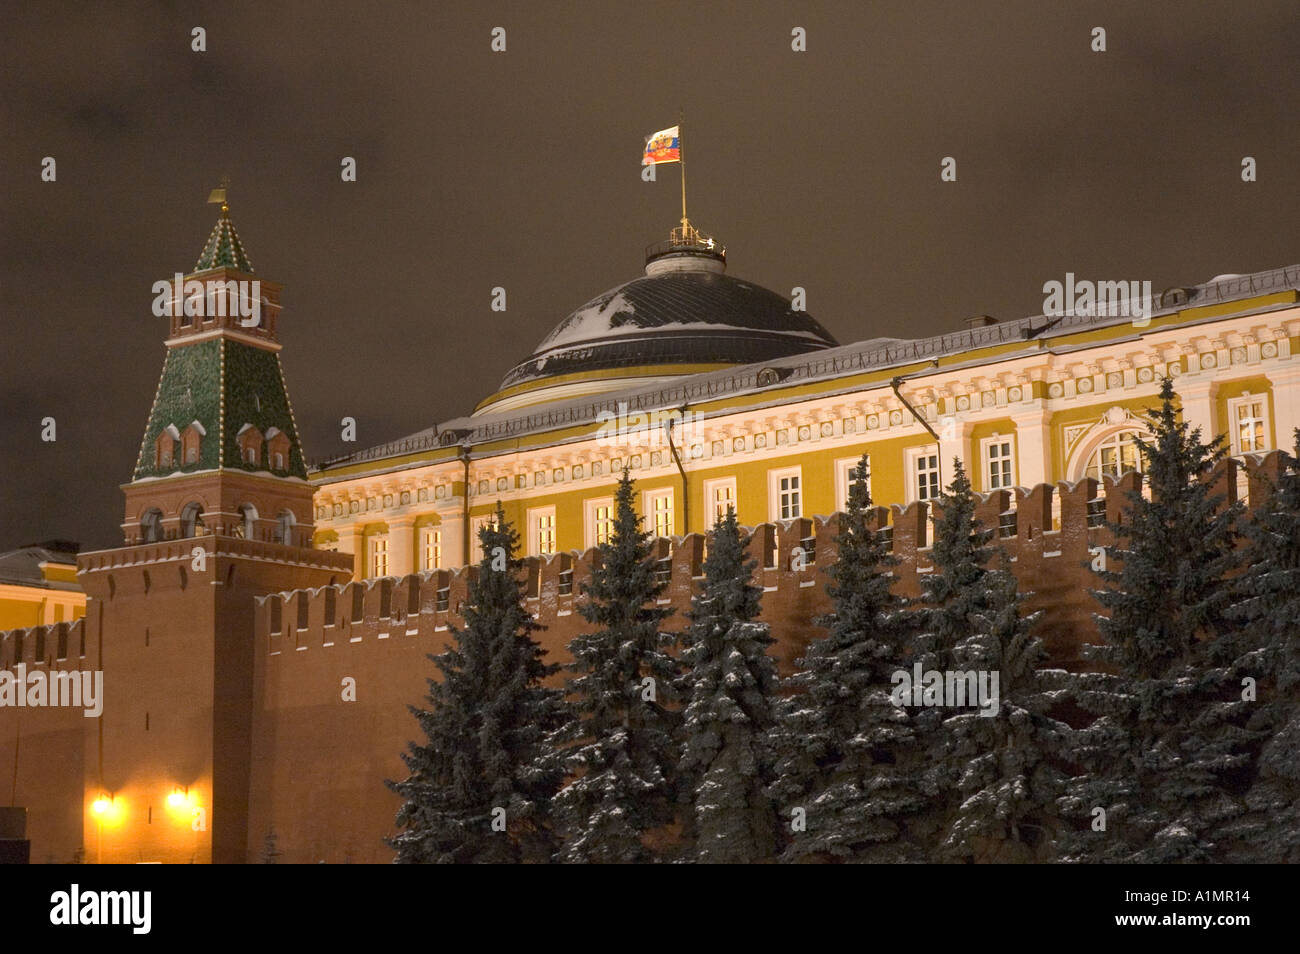 The Great Kremlin Palace in central Moscow - Stock Image